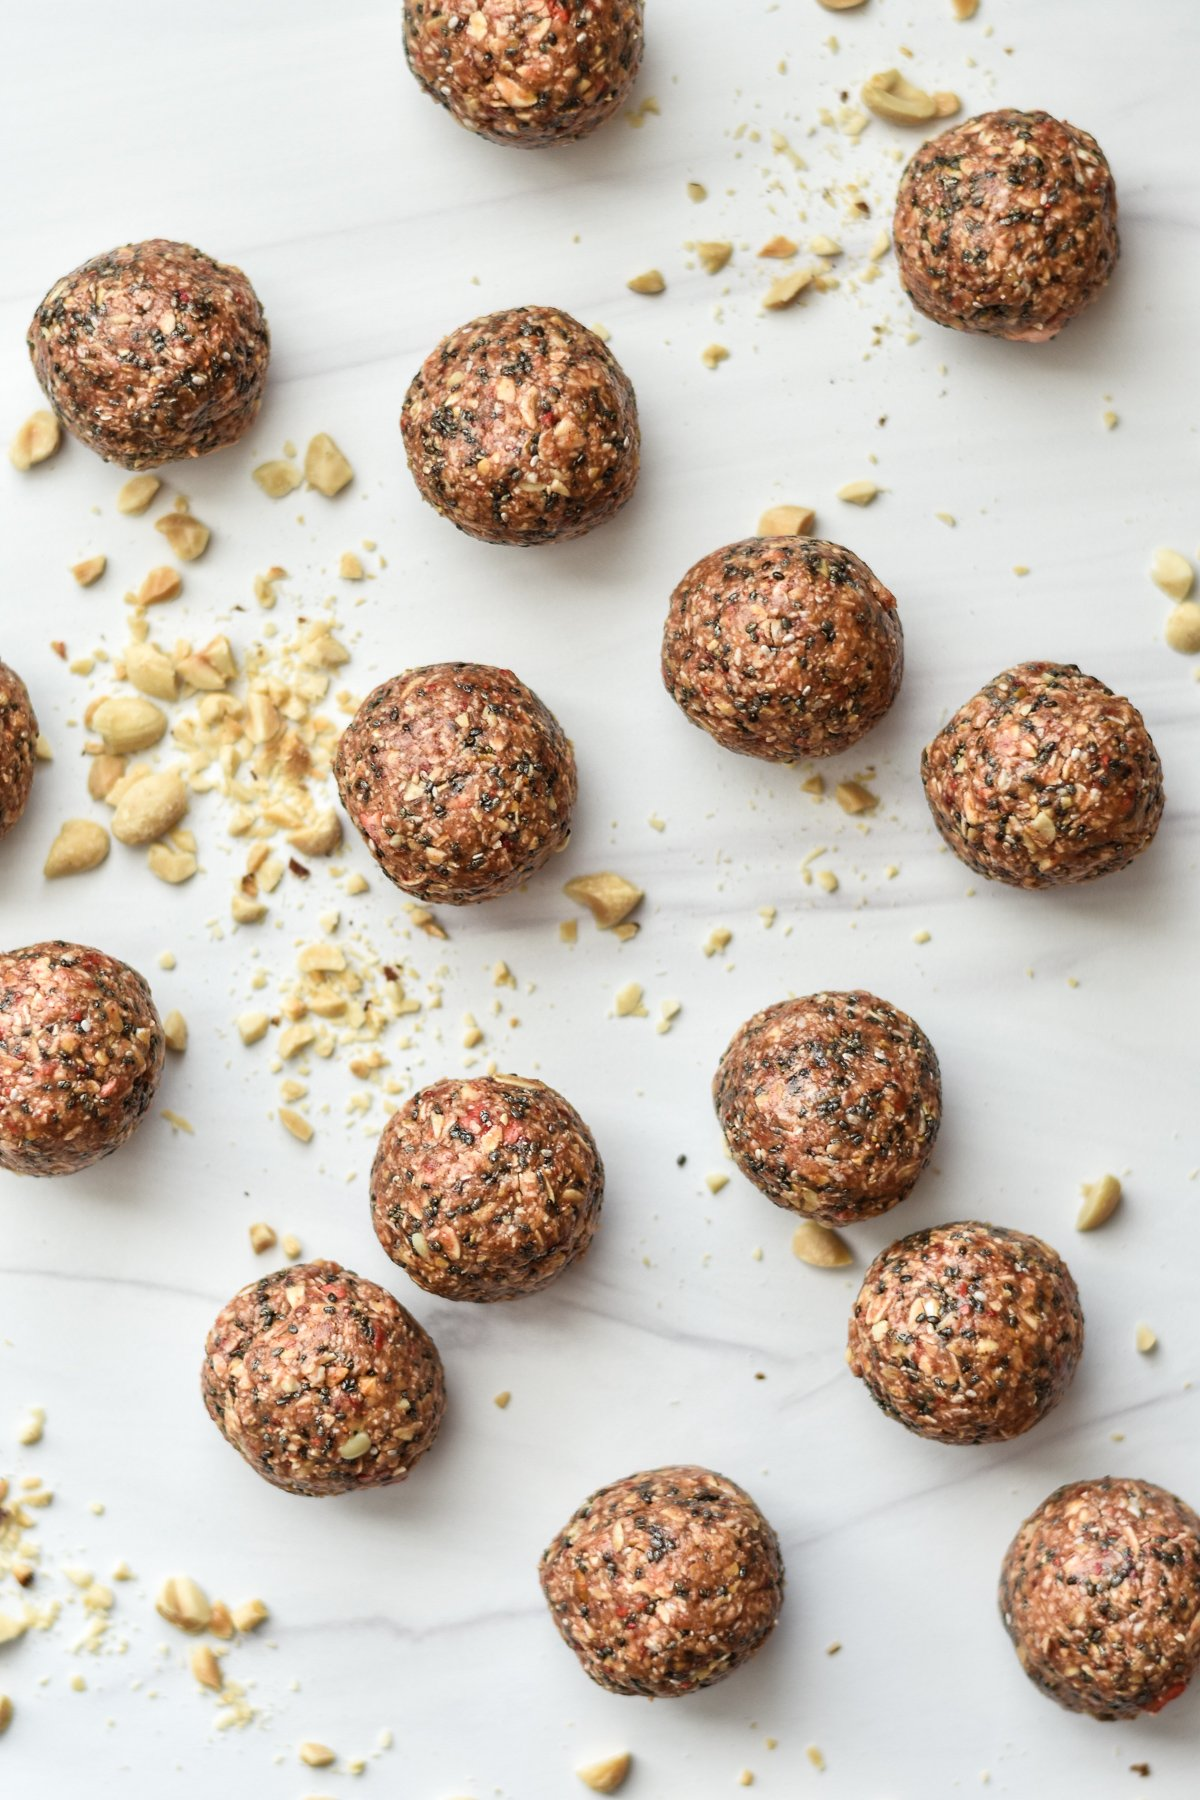 PB & J energy bites with crushed peanuts on a countertop